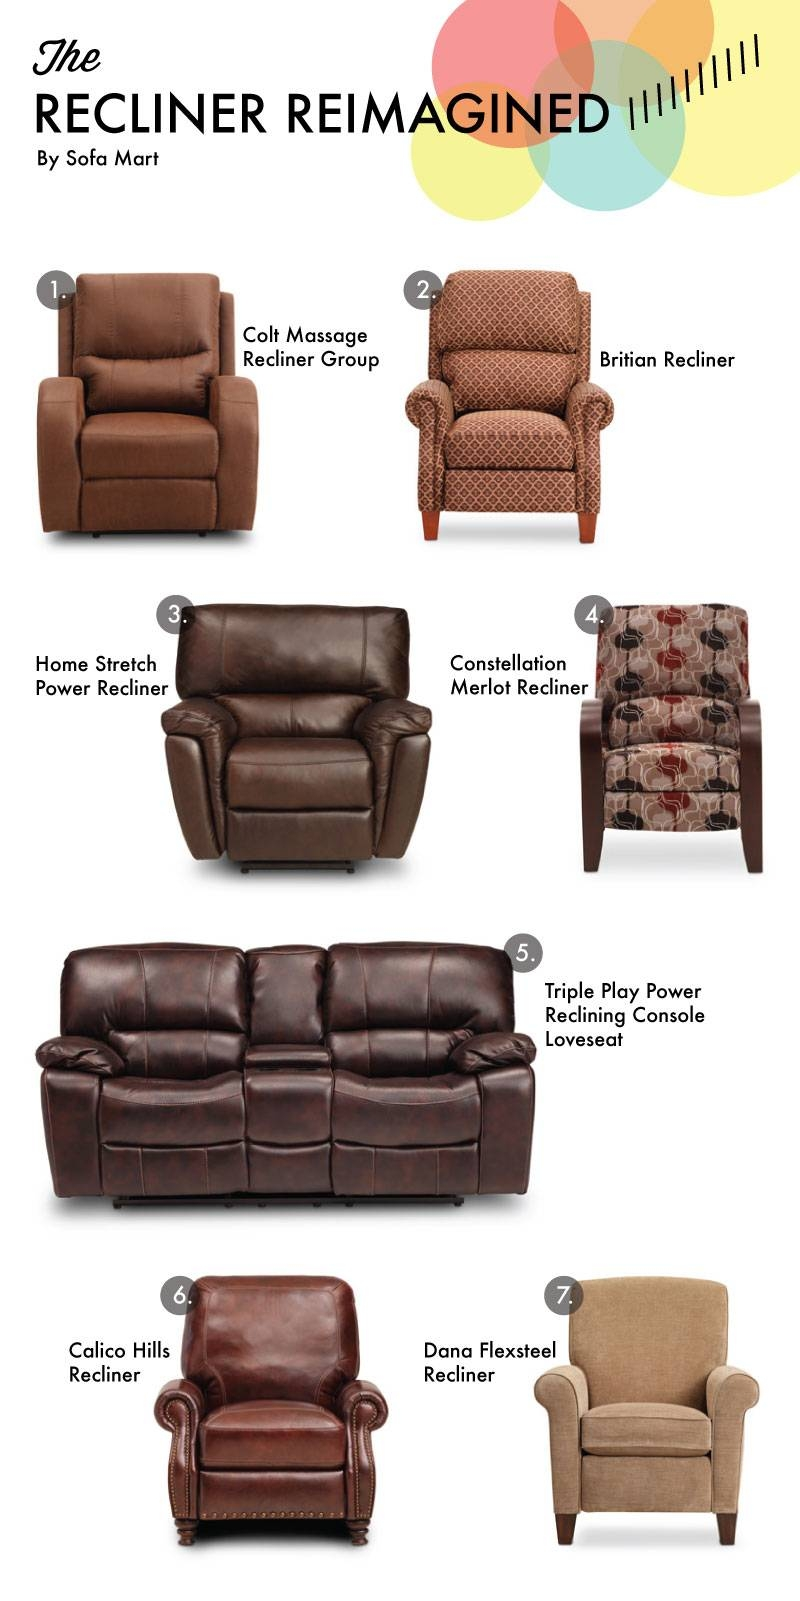 Recliner Reimagined For Father's Day – Sofa Mart For The Front Door Within Sofa Mart Chairs (View 19 of 30)